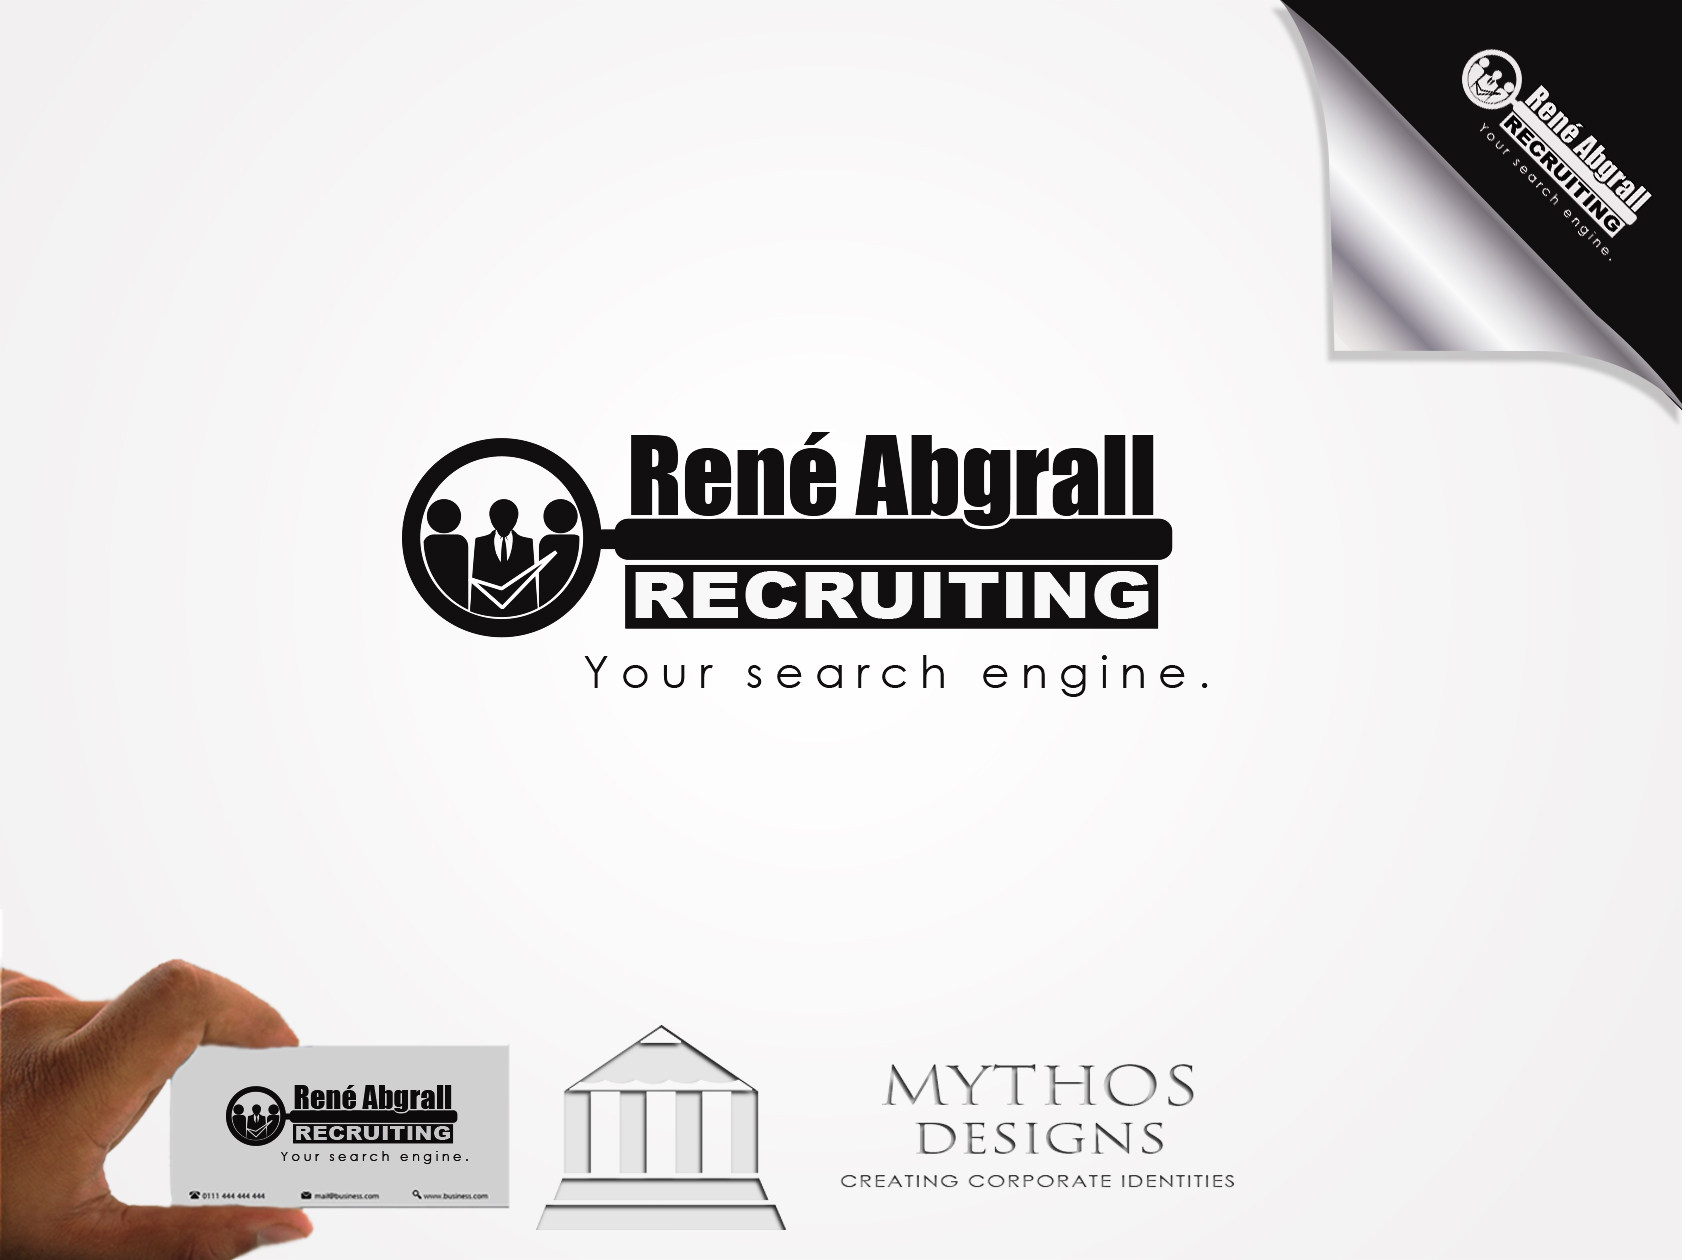 Logo Design by Mythos Designs - Entry No. 14 in the Logo Design Contest Artistic Logo Design for René Abgrall Recruiting.